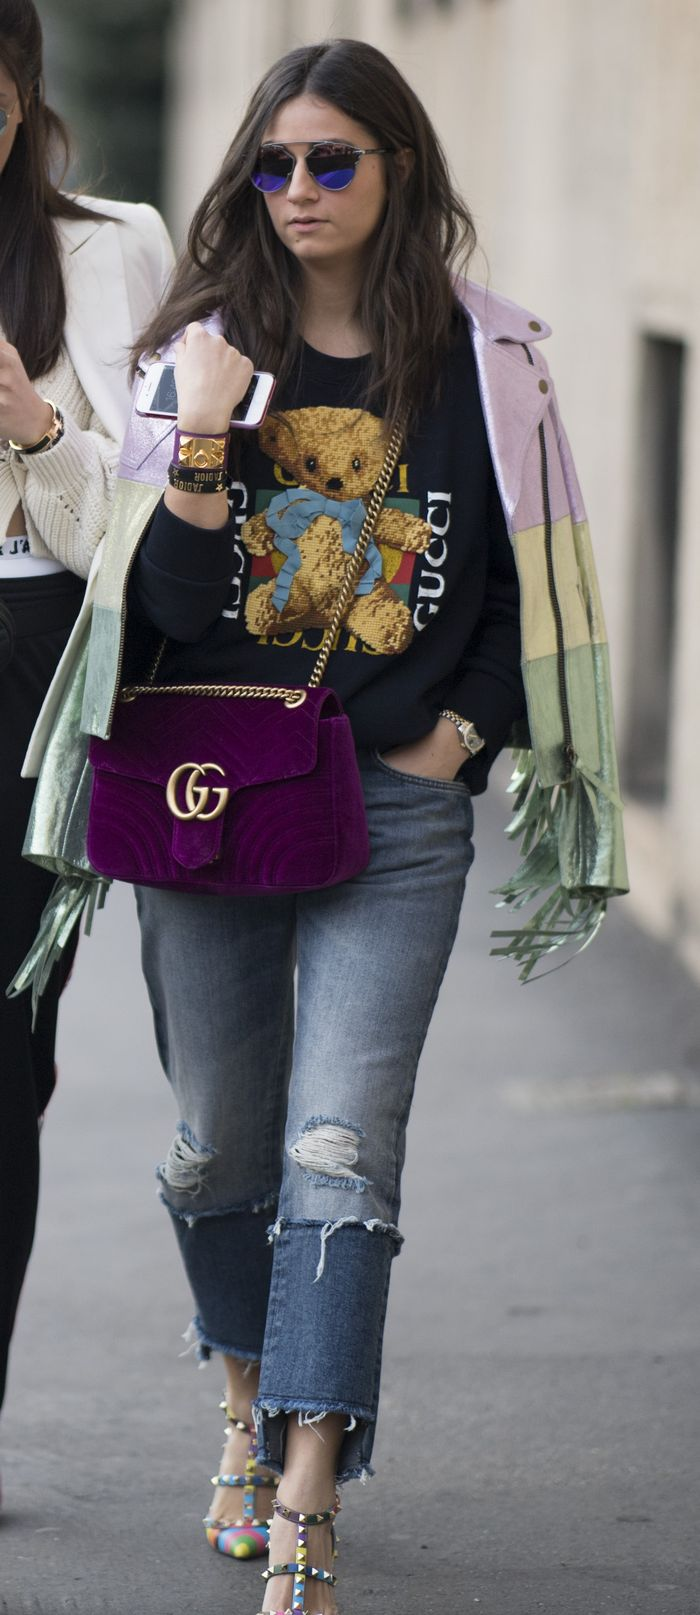 Gucci T-shirt with a colorful jacket